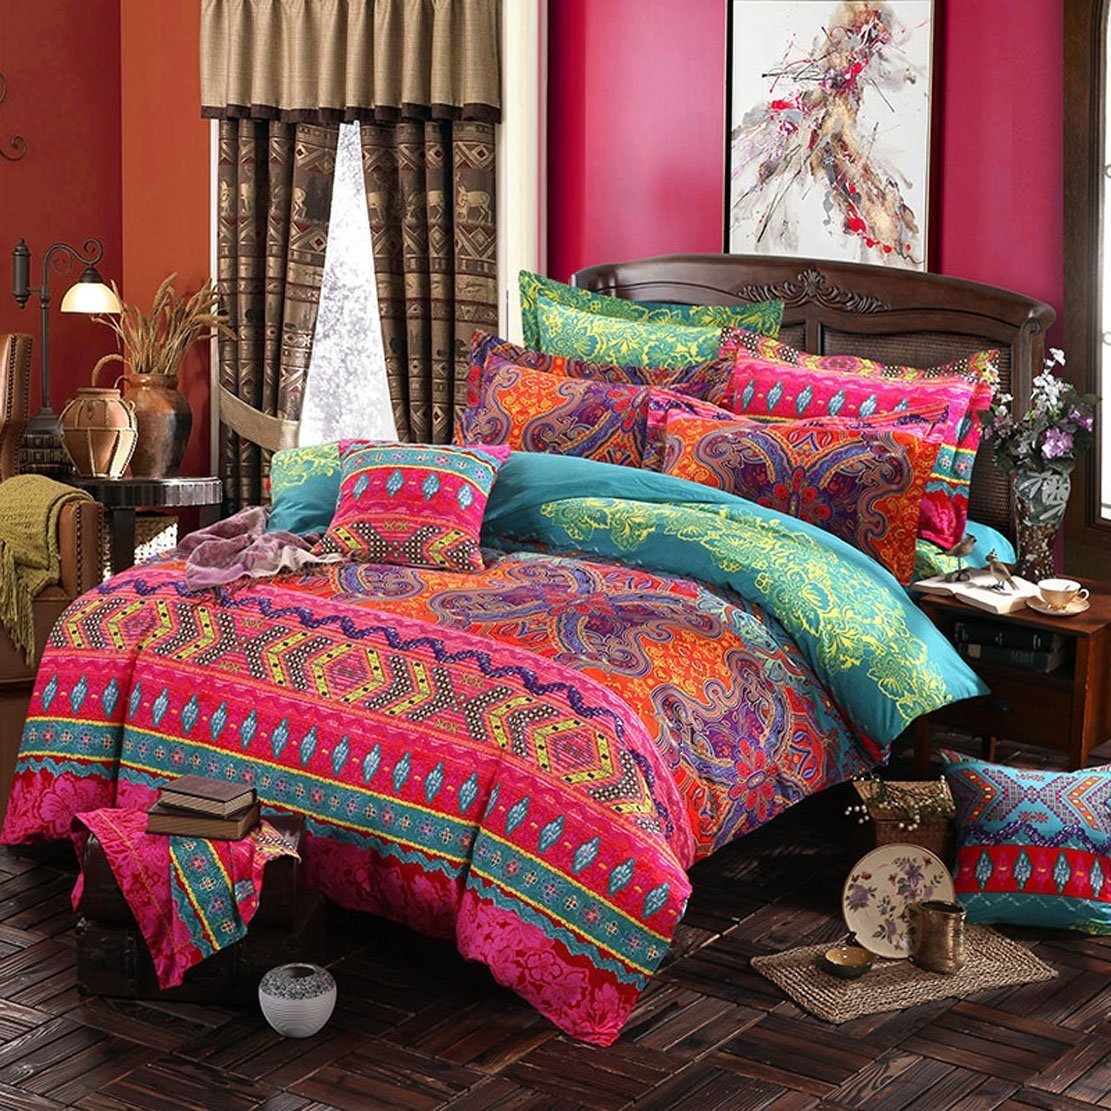 Wholesale Bohemian Comforter Sets Queen Buy Cheap In Bulk From China Suppliers With Coupon Dhgate Com